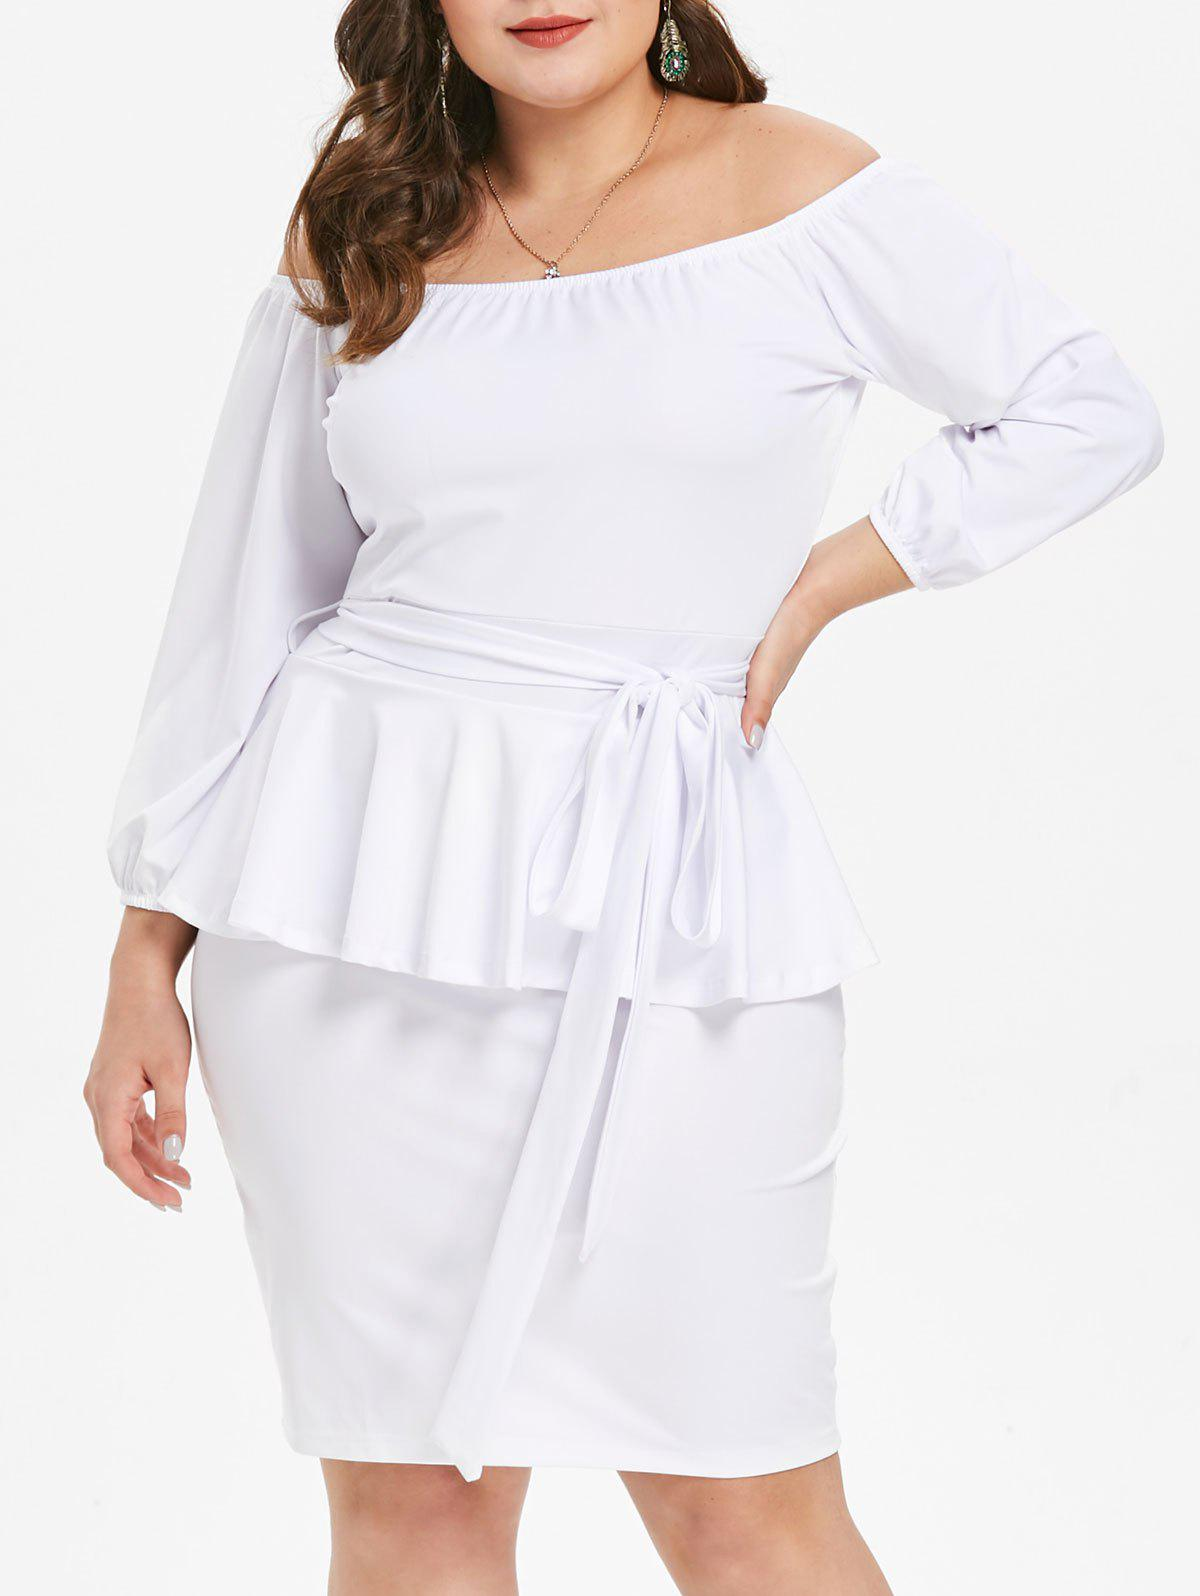 Shops Off The Shoulder Plus Size Peplum Dress with Belt